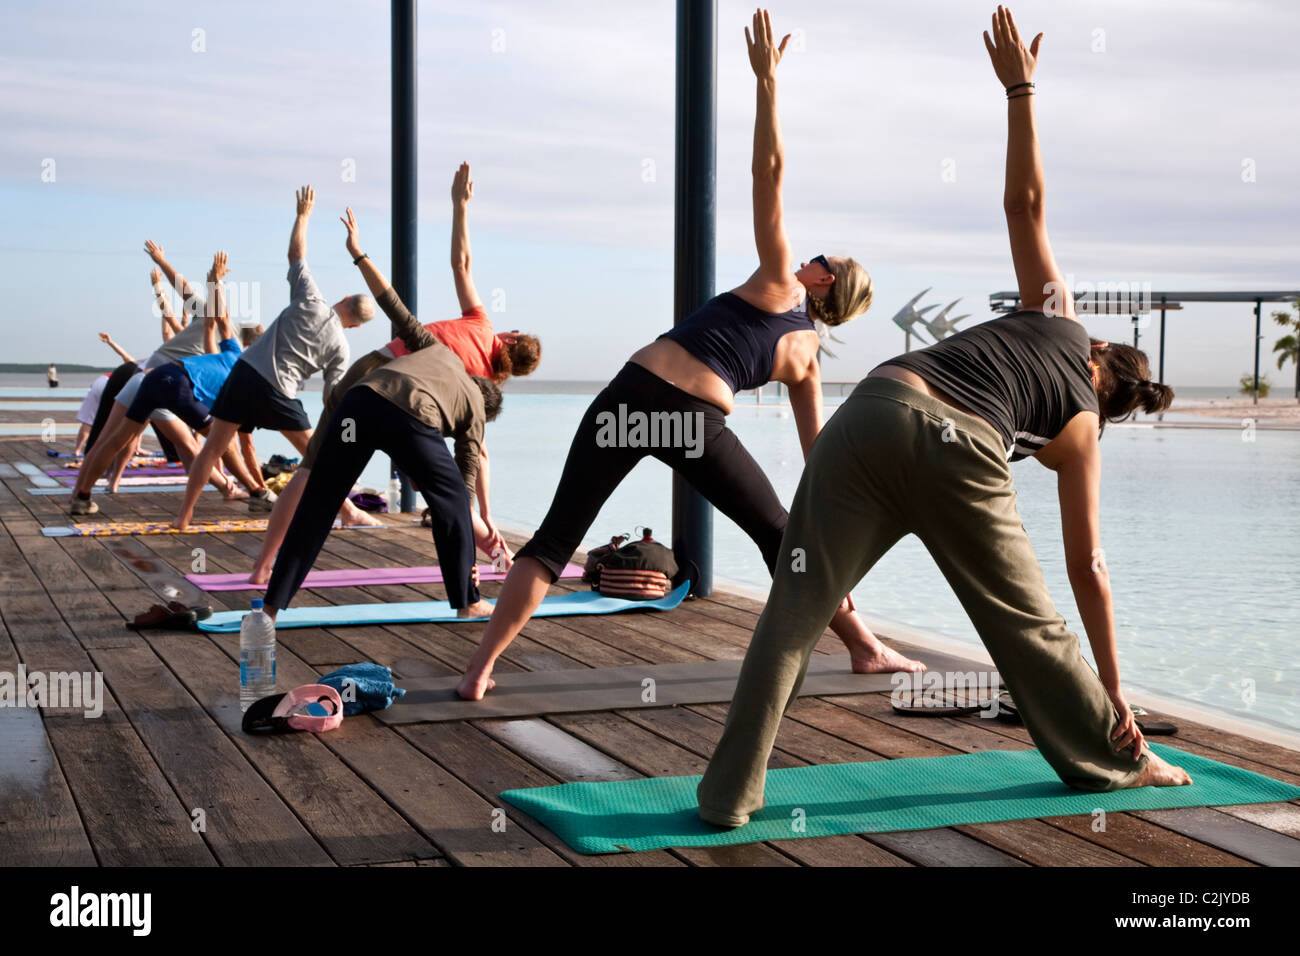 Morning yoga class at the Esplanade Lagoon. Cairns, Queensland, Australia - Stock Image